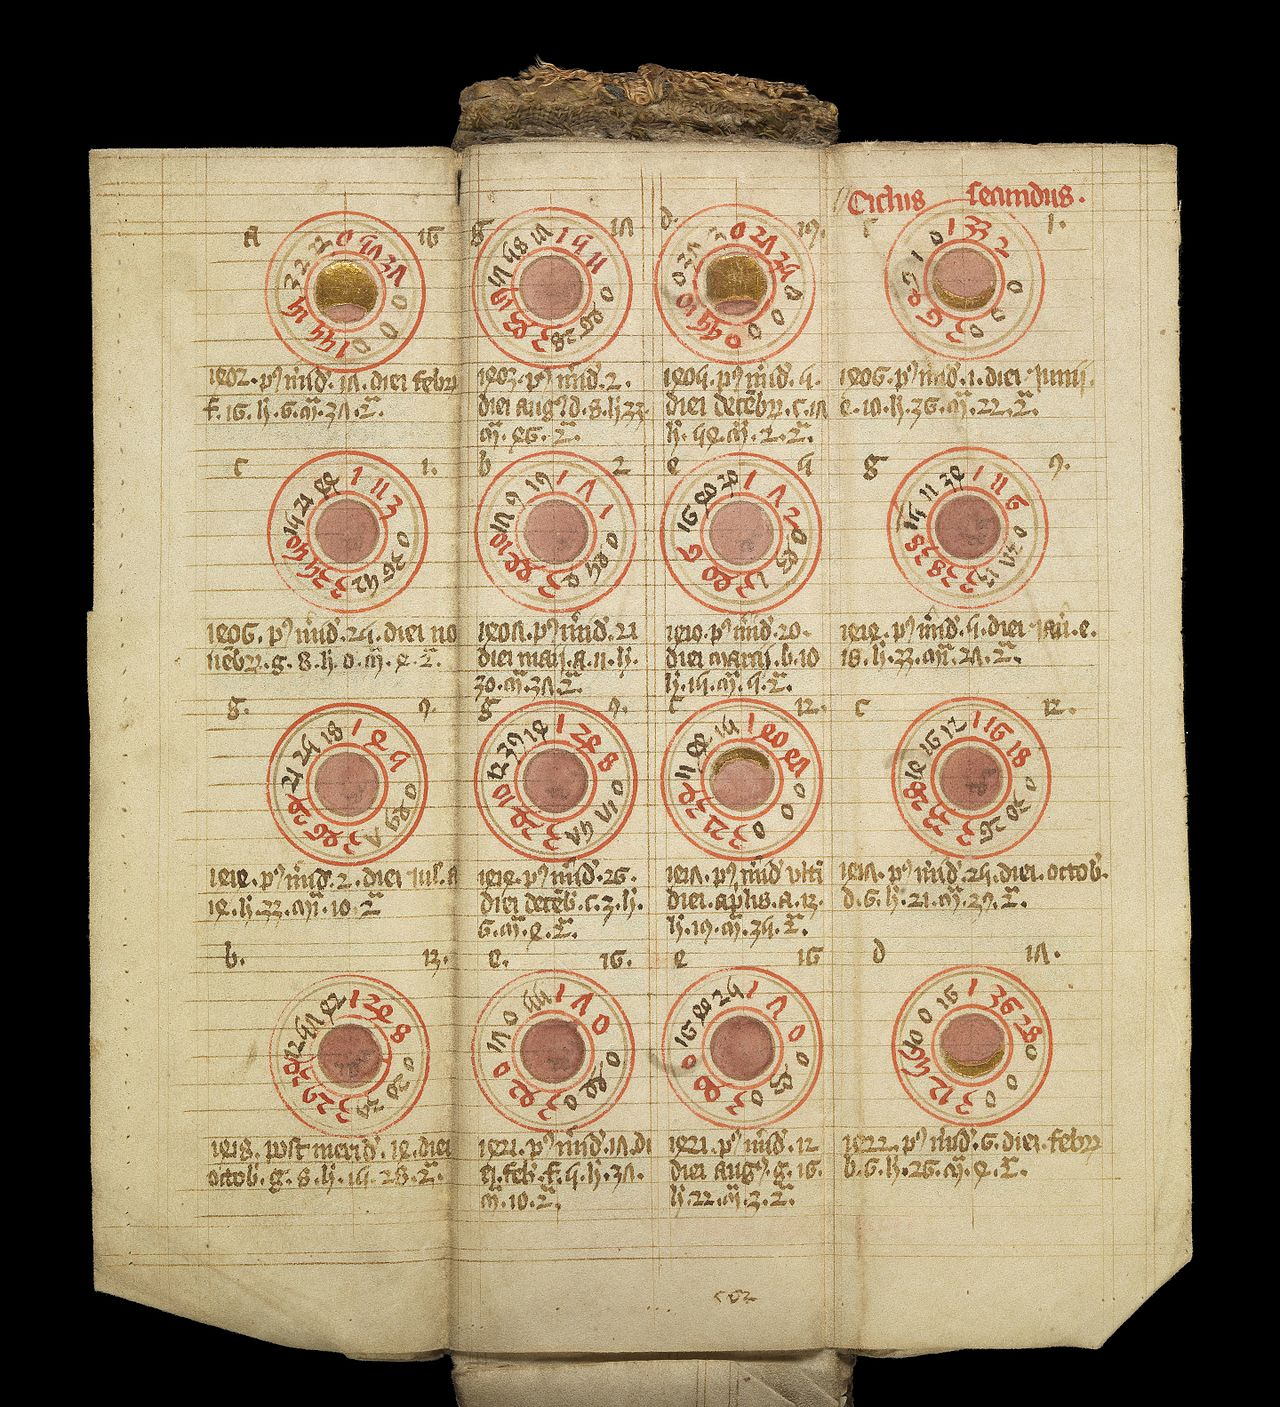 Medieval folding almanac, 15th century ( Source: Wikimedia Commons)